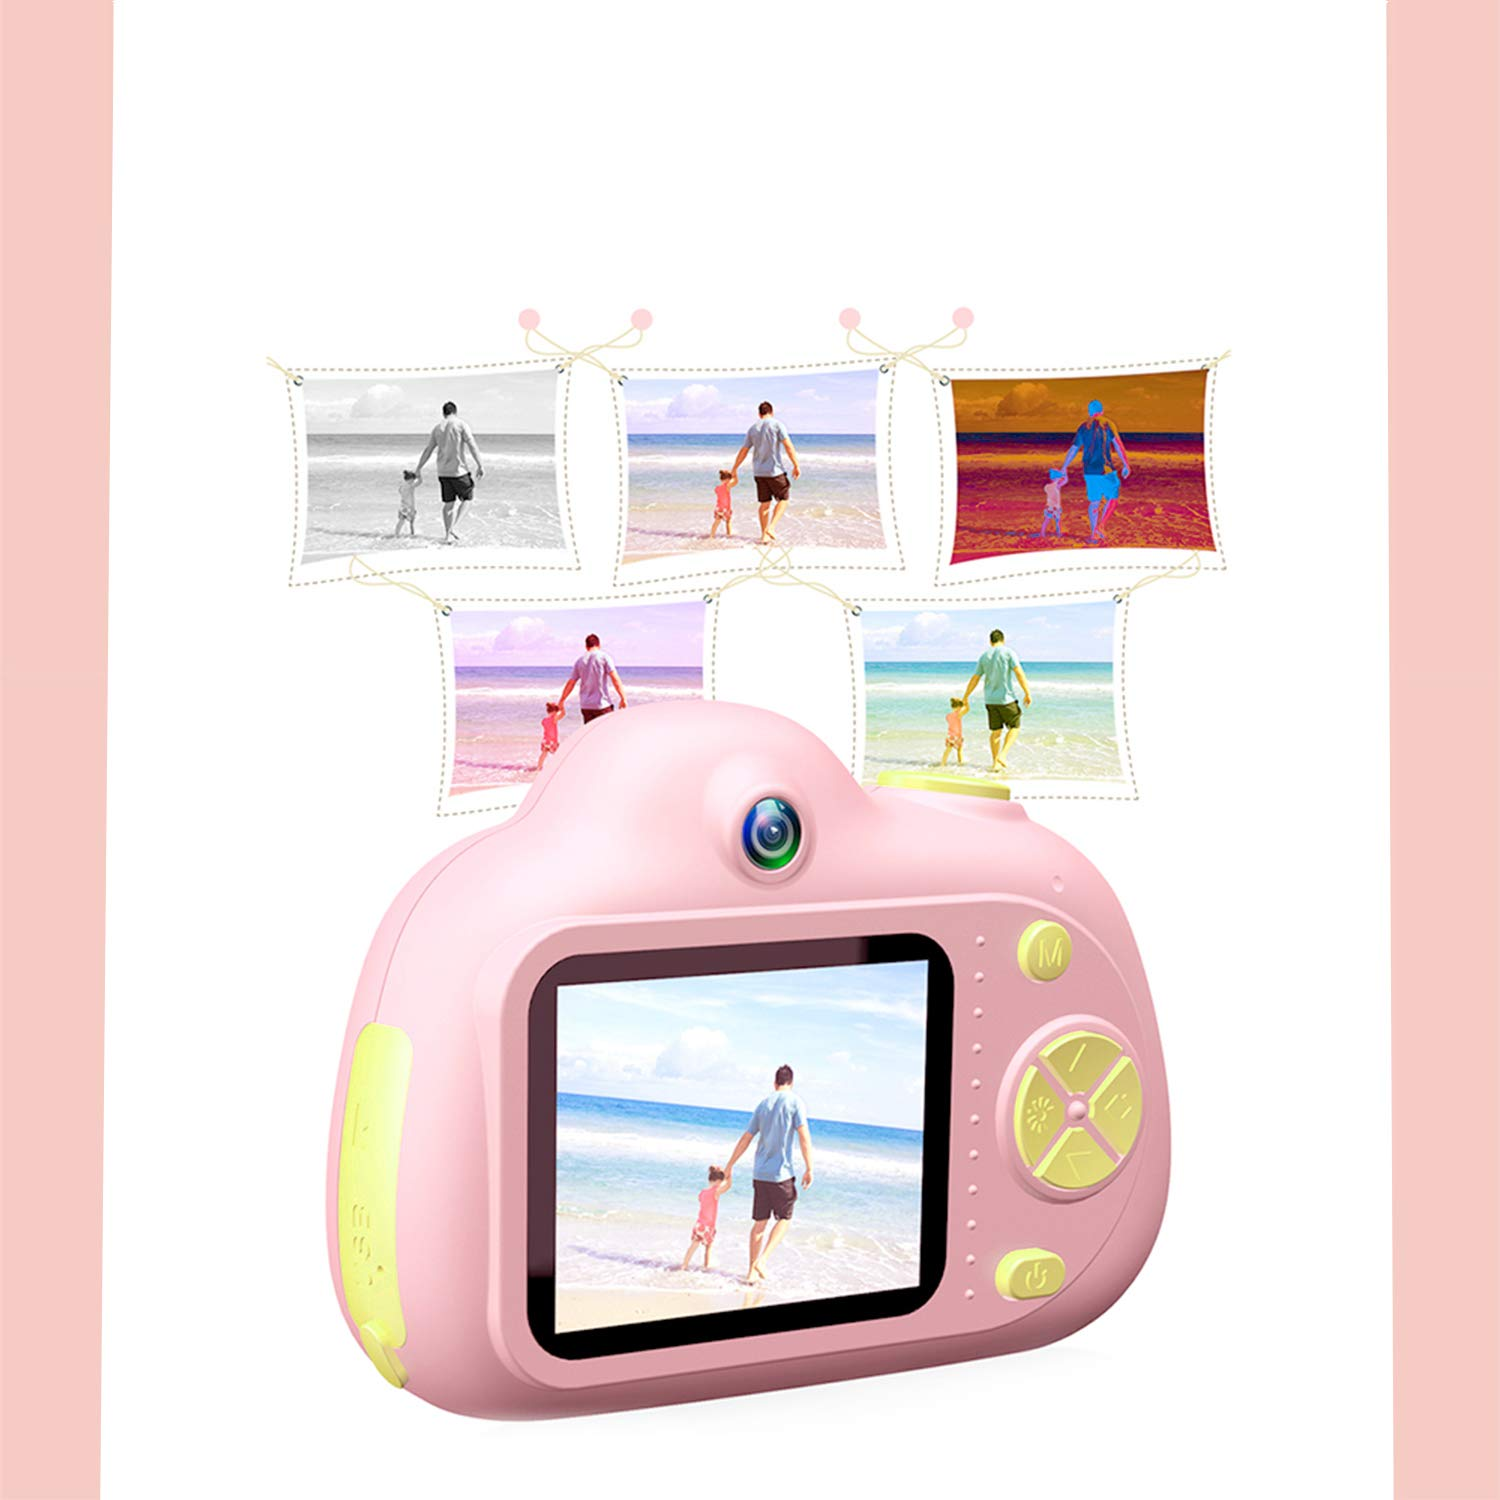 ESROVER Kids Digital Camera,2.0 Inch Screen 8MP Dual Shockproof Cameras Toys with Silicone Soft Cover Best Gifts Mini Selfie Camcorder for 4-8 Year Old Girls Boys Children by ESROVER (Image #9)